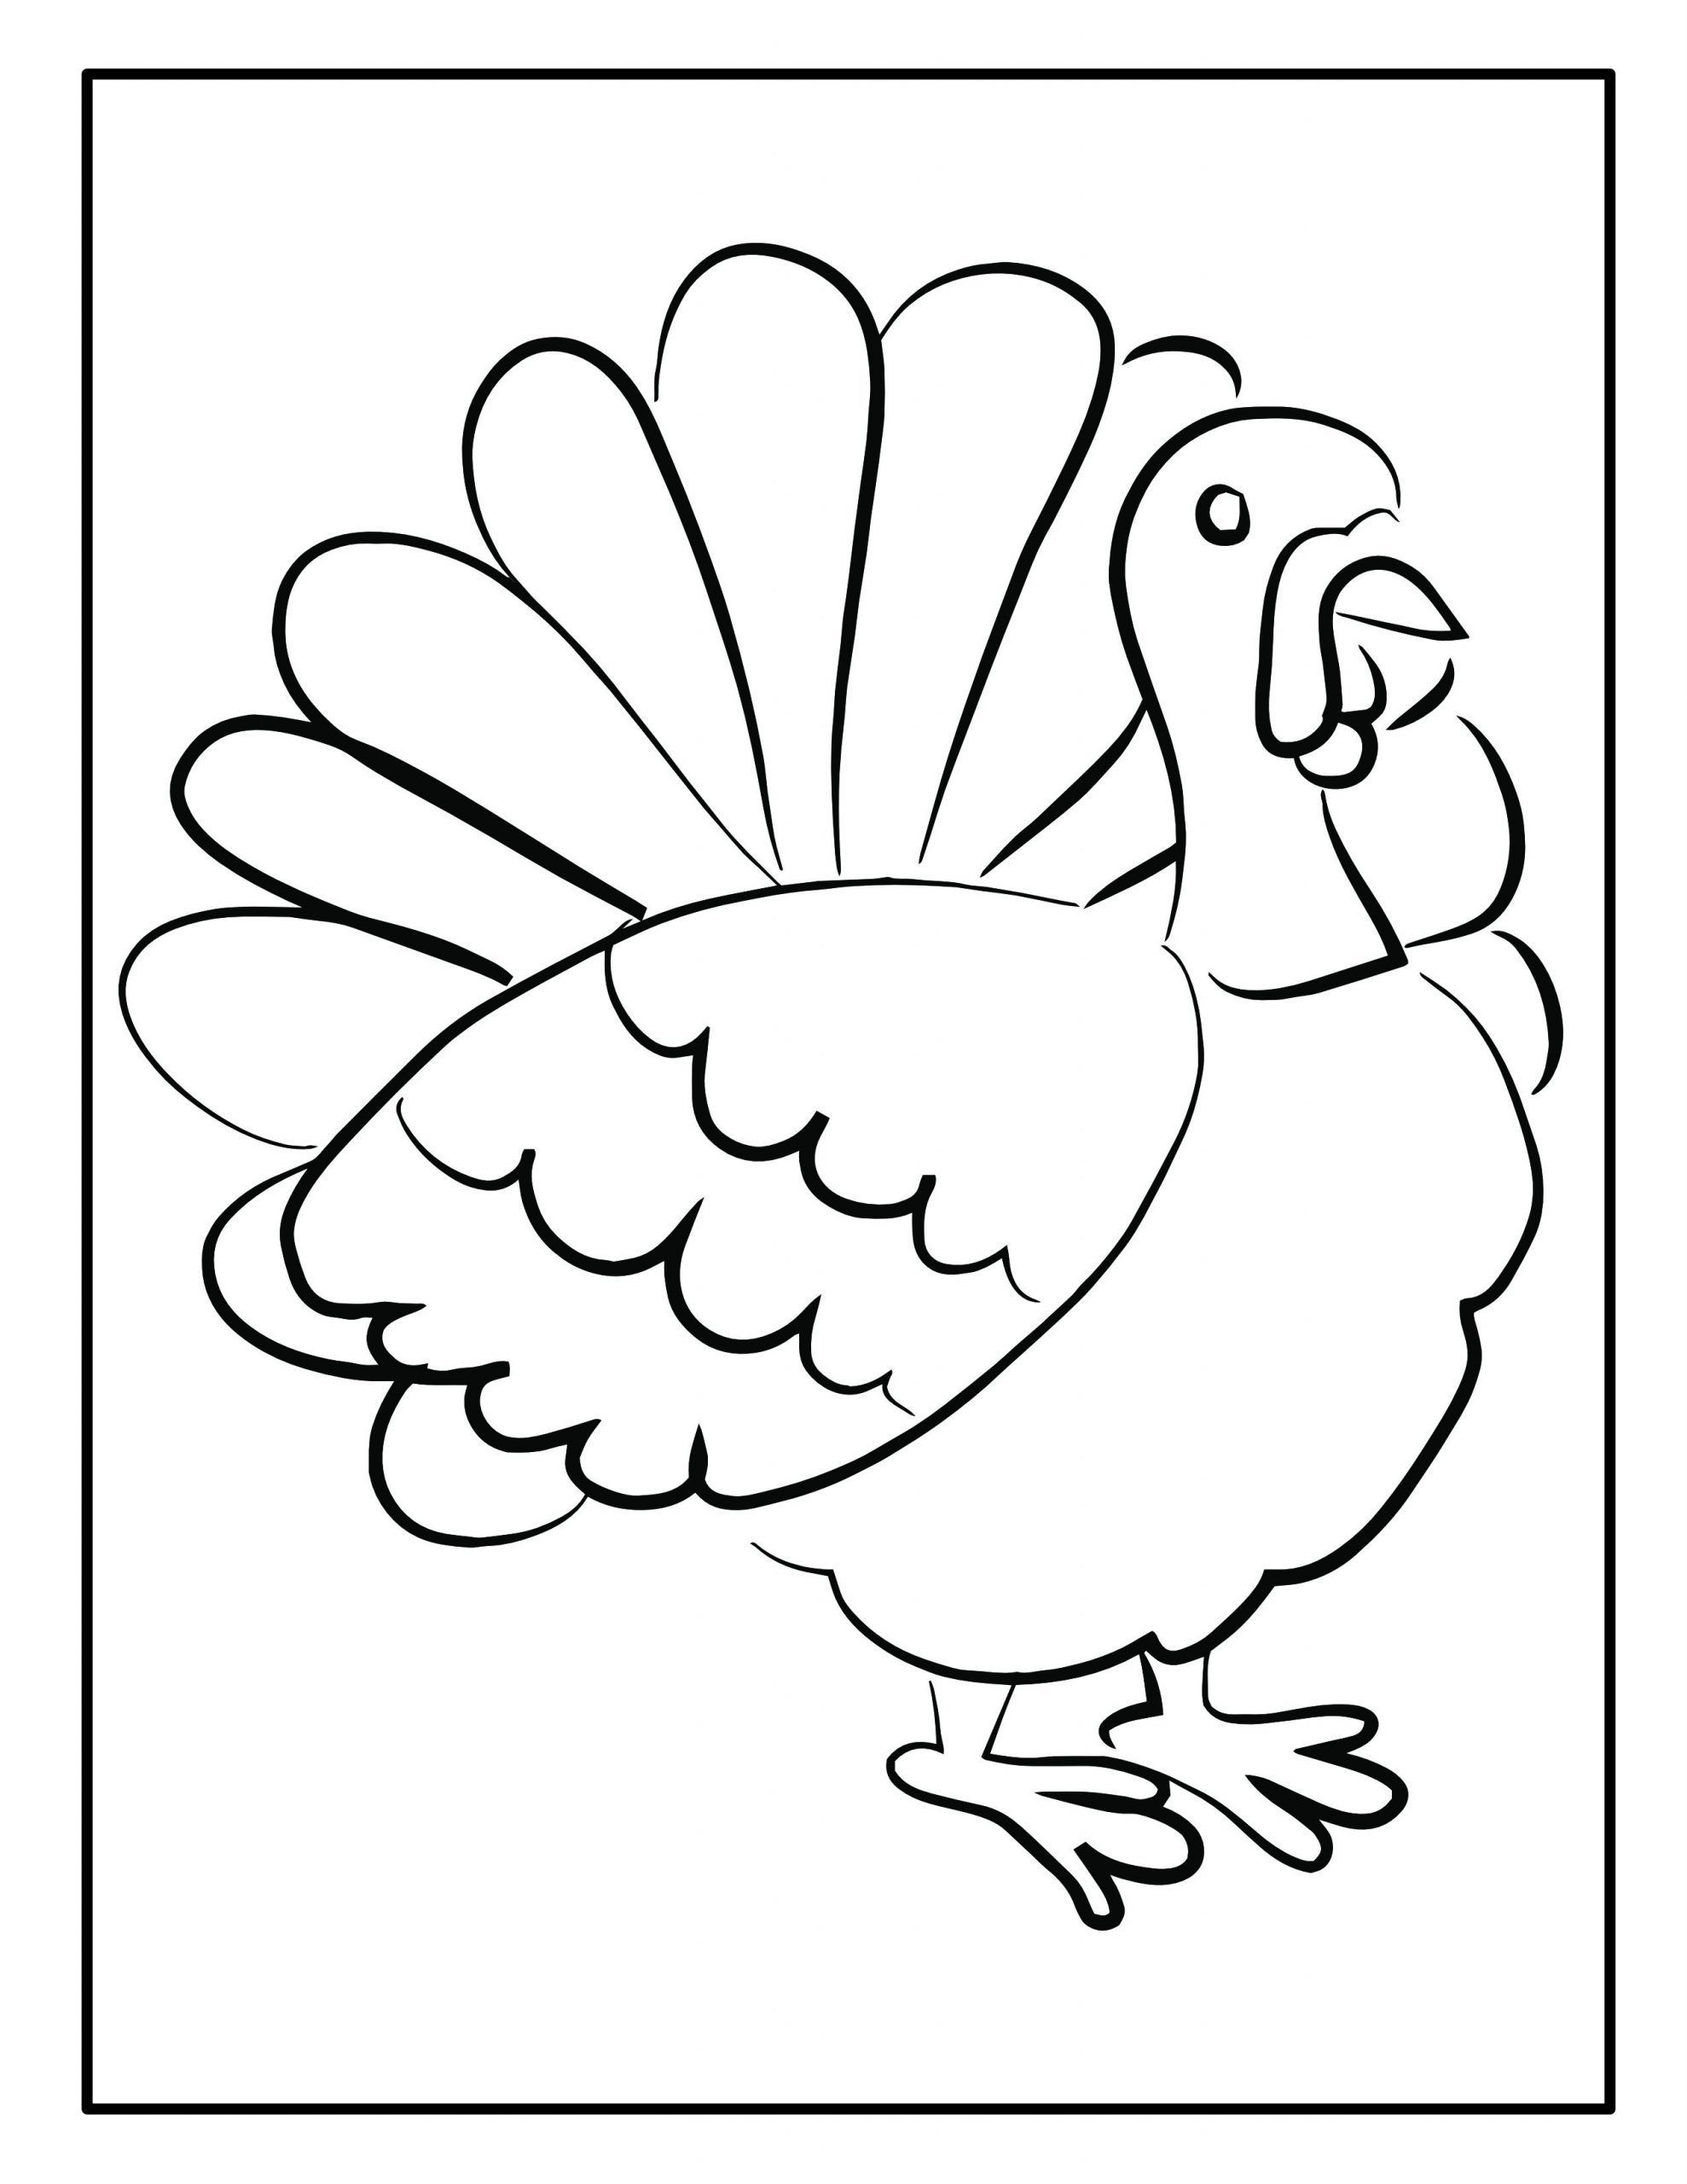 Free Printable Thanksgiving Coloring Pages Valentines Day Coloring Page Thanksgiving Coloring Pages Valentines Day Coloring [ 2560 x 1978 Pixel ]